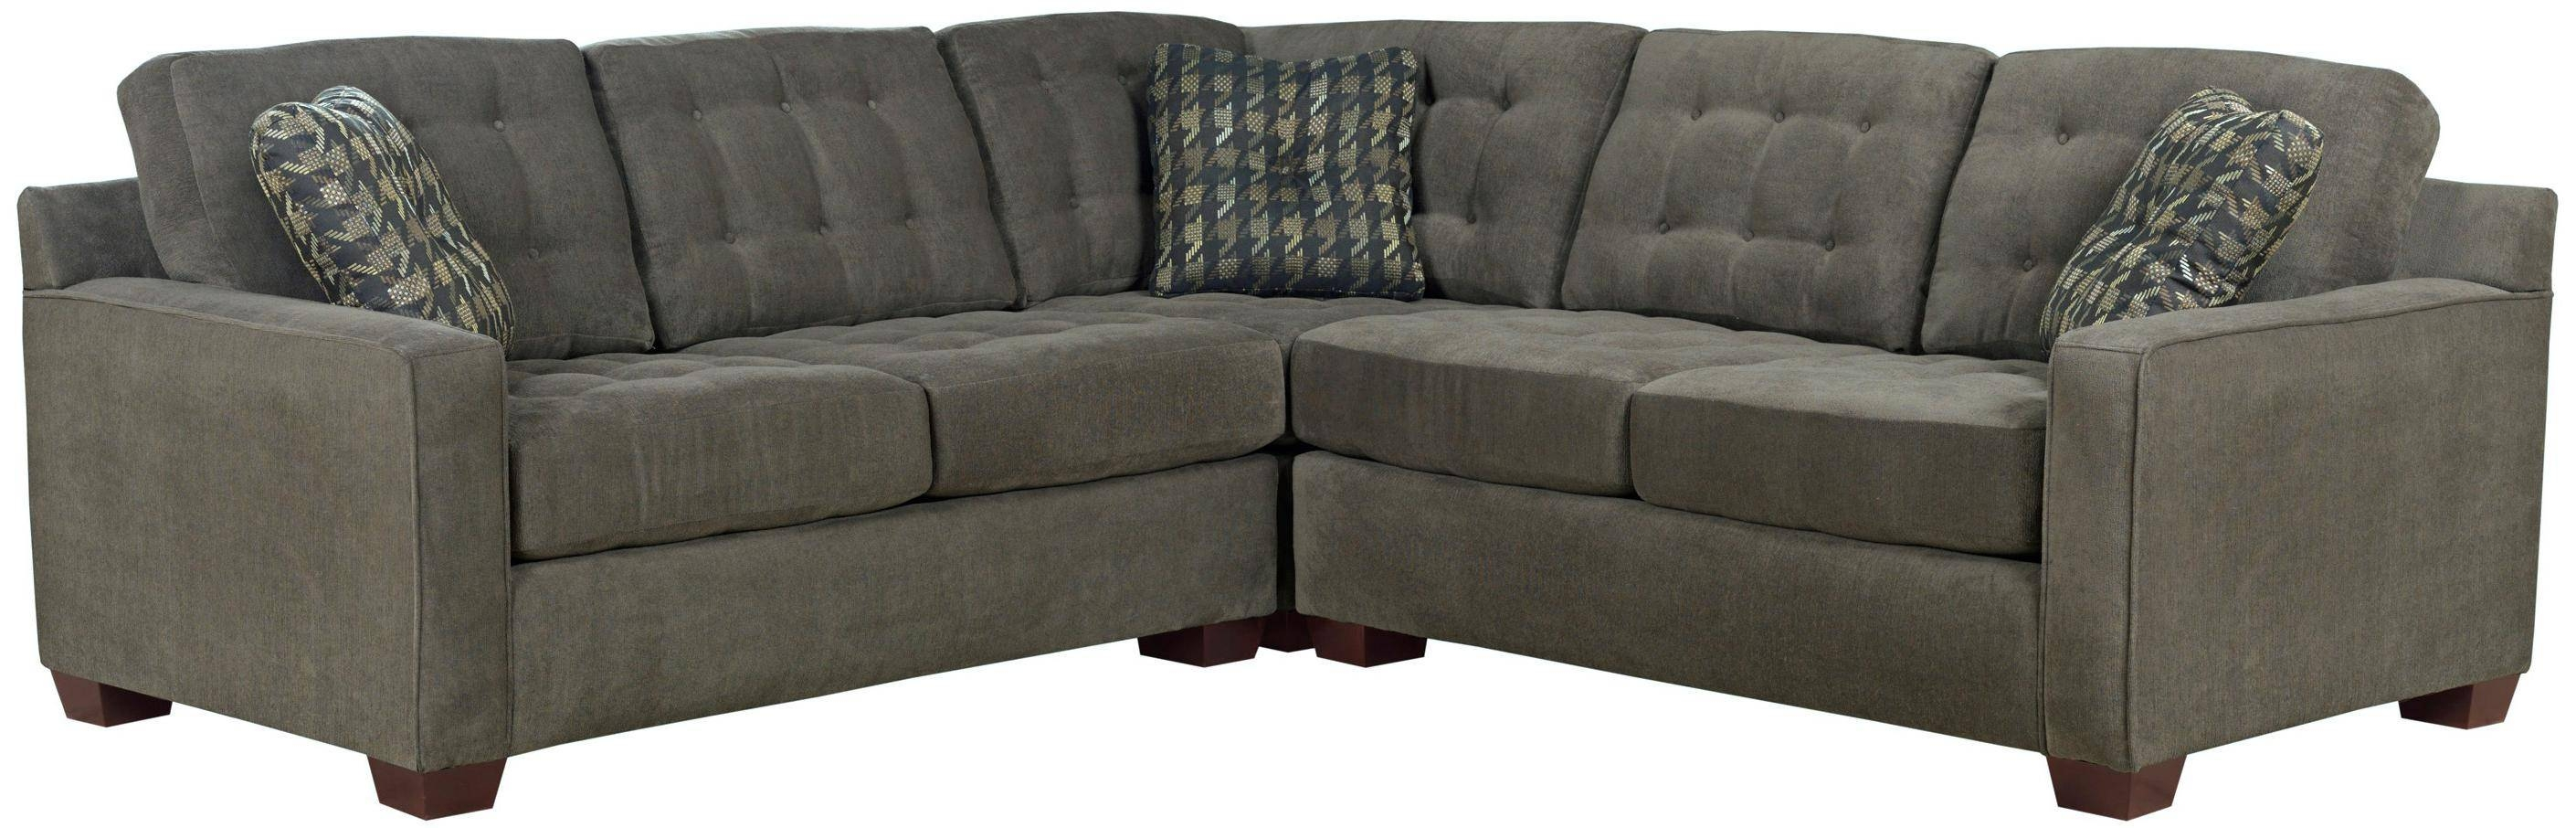 Broyhill Furniture Tribeca Contemporary L-Shaped Sectional Sofa intended for Slumberland Couches (Image 10 of 15)